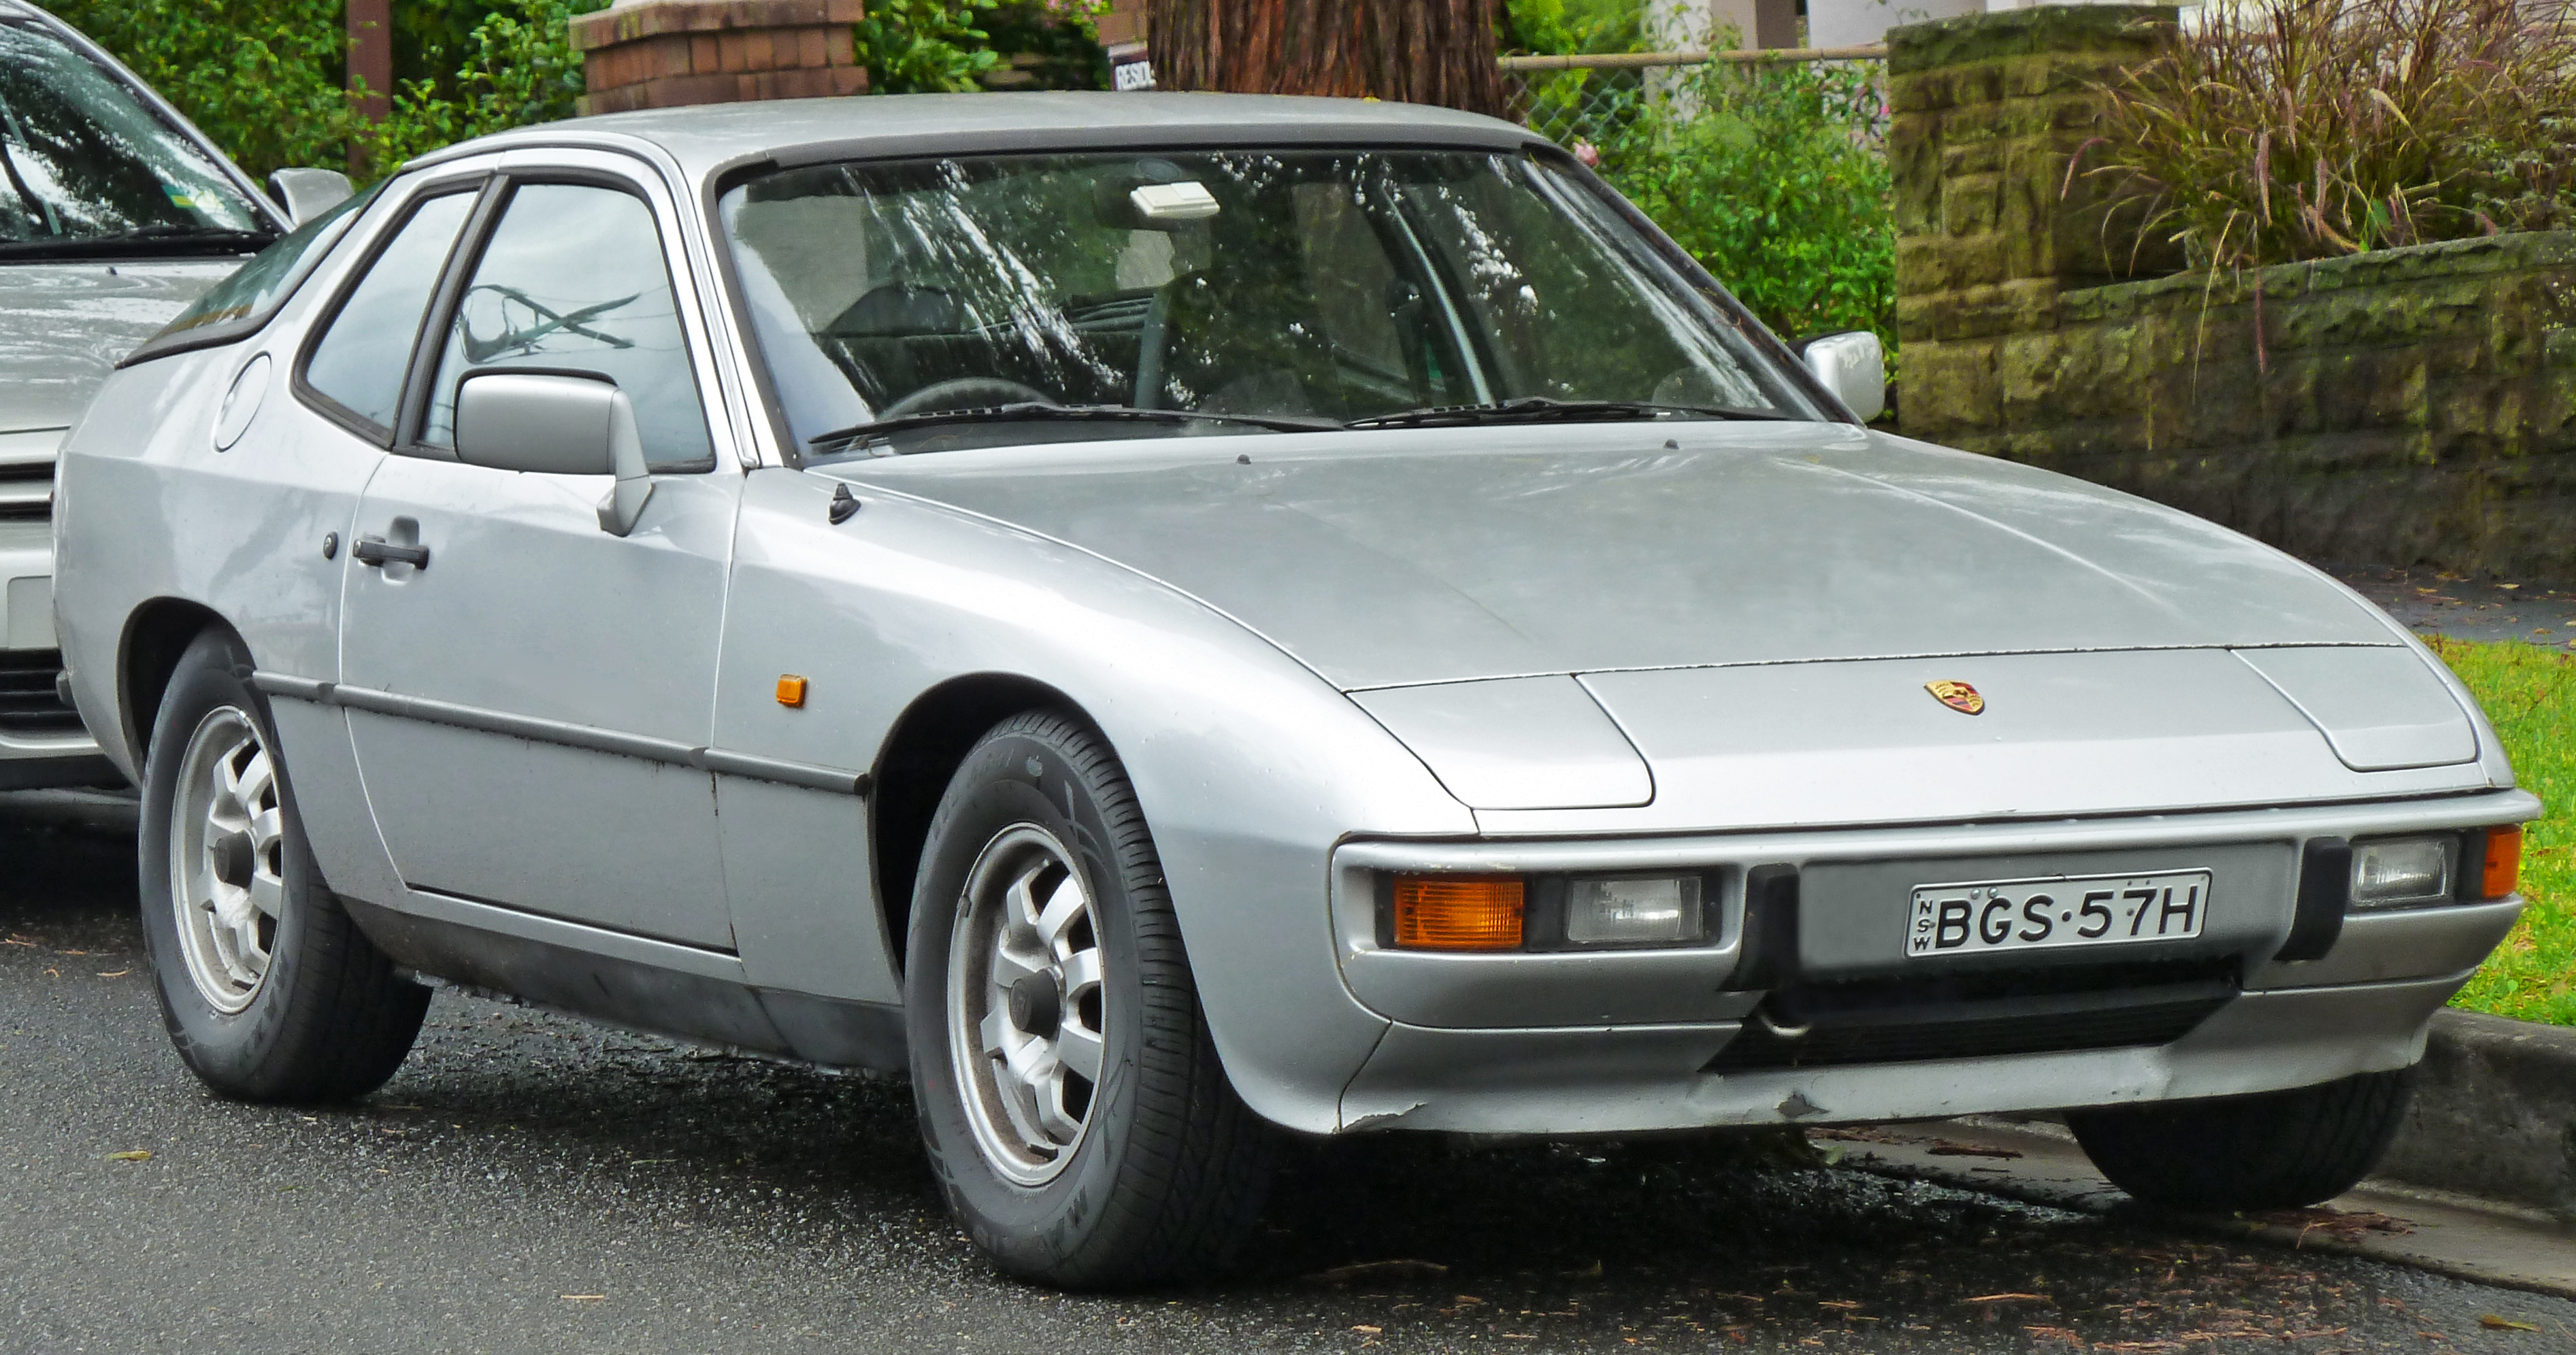 https://upload.wikimedia.org/wikipedia/commons/2/28/1977-1982_Porsche_924_coupe_(2011-04-28)_01.jpg